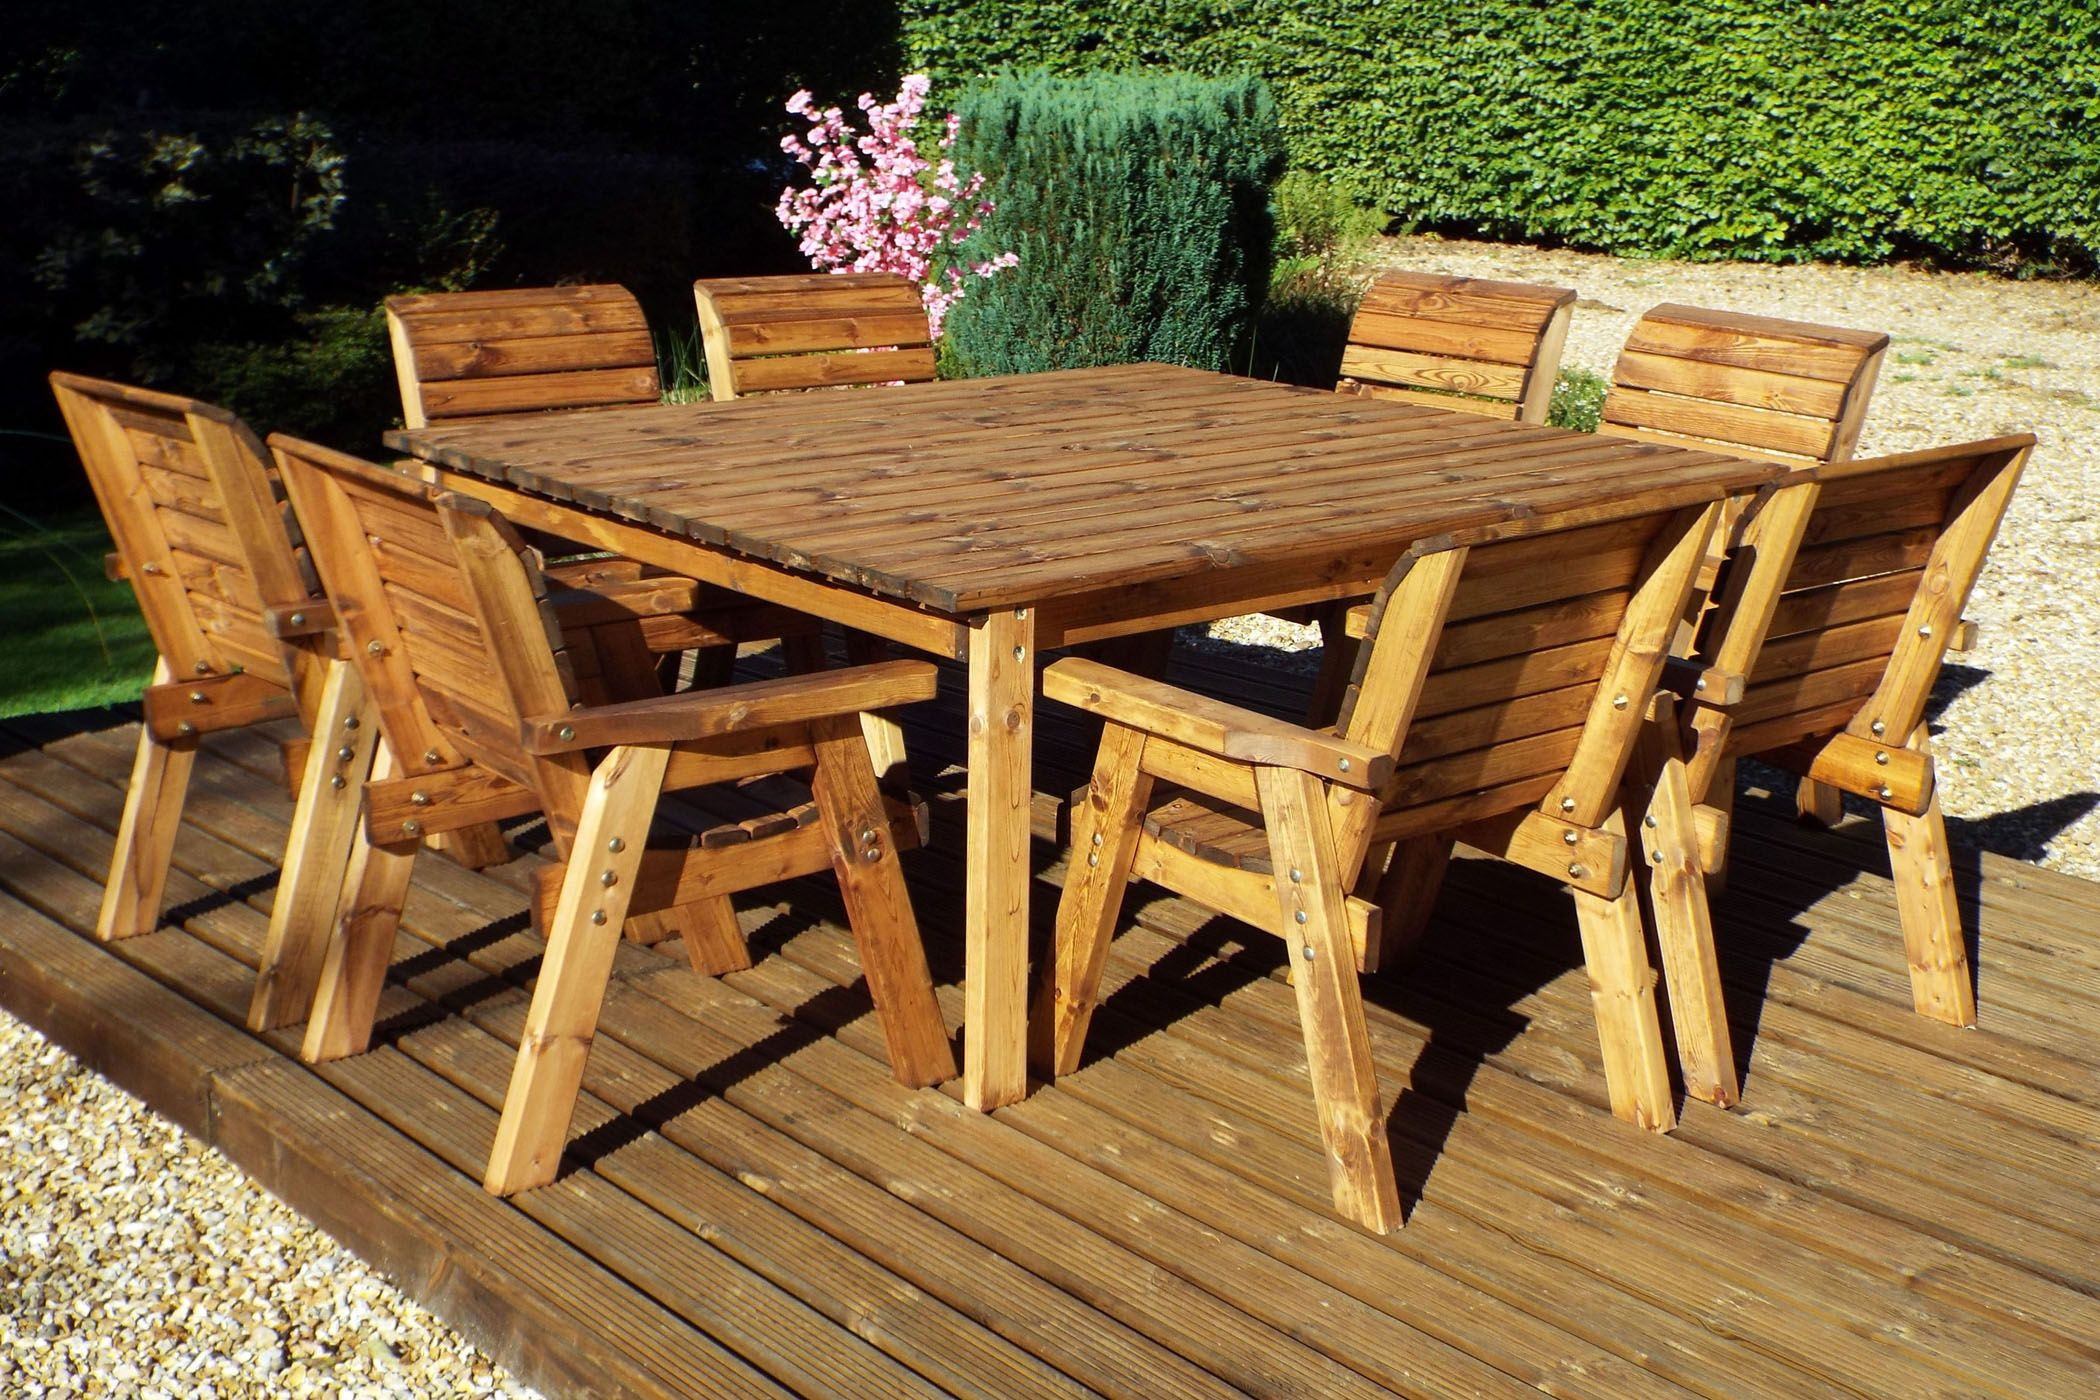 8 Seater Wooden Garden Table Chair Dining Set Wooden Outdoor Table Wooden Garden Table Wooden Table And Chairs